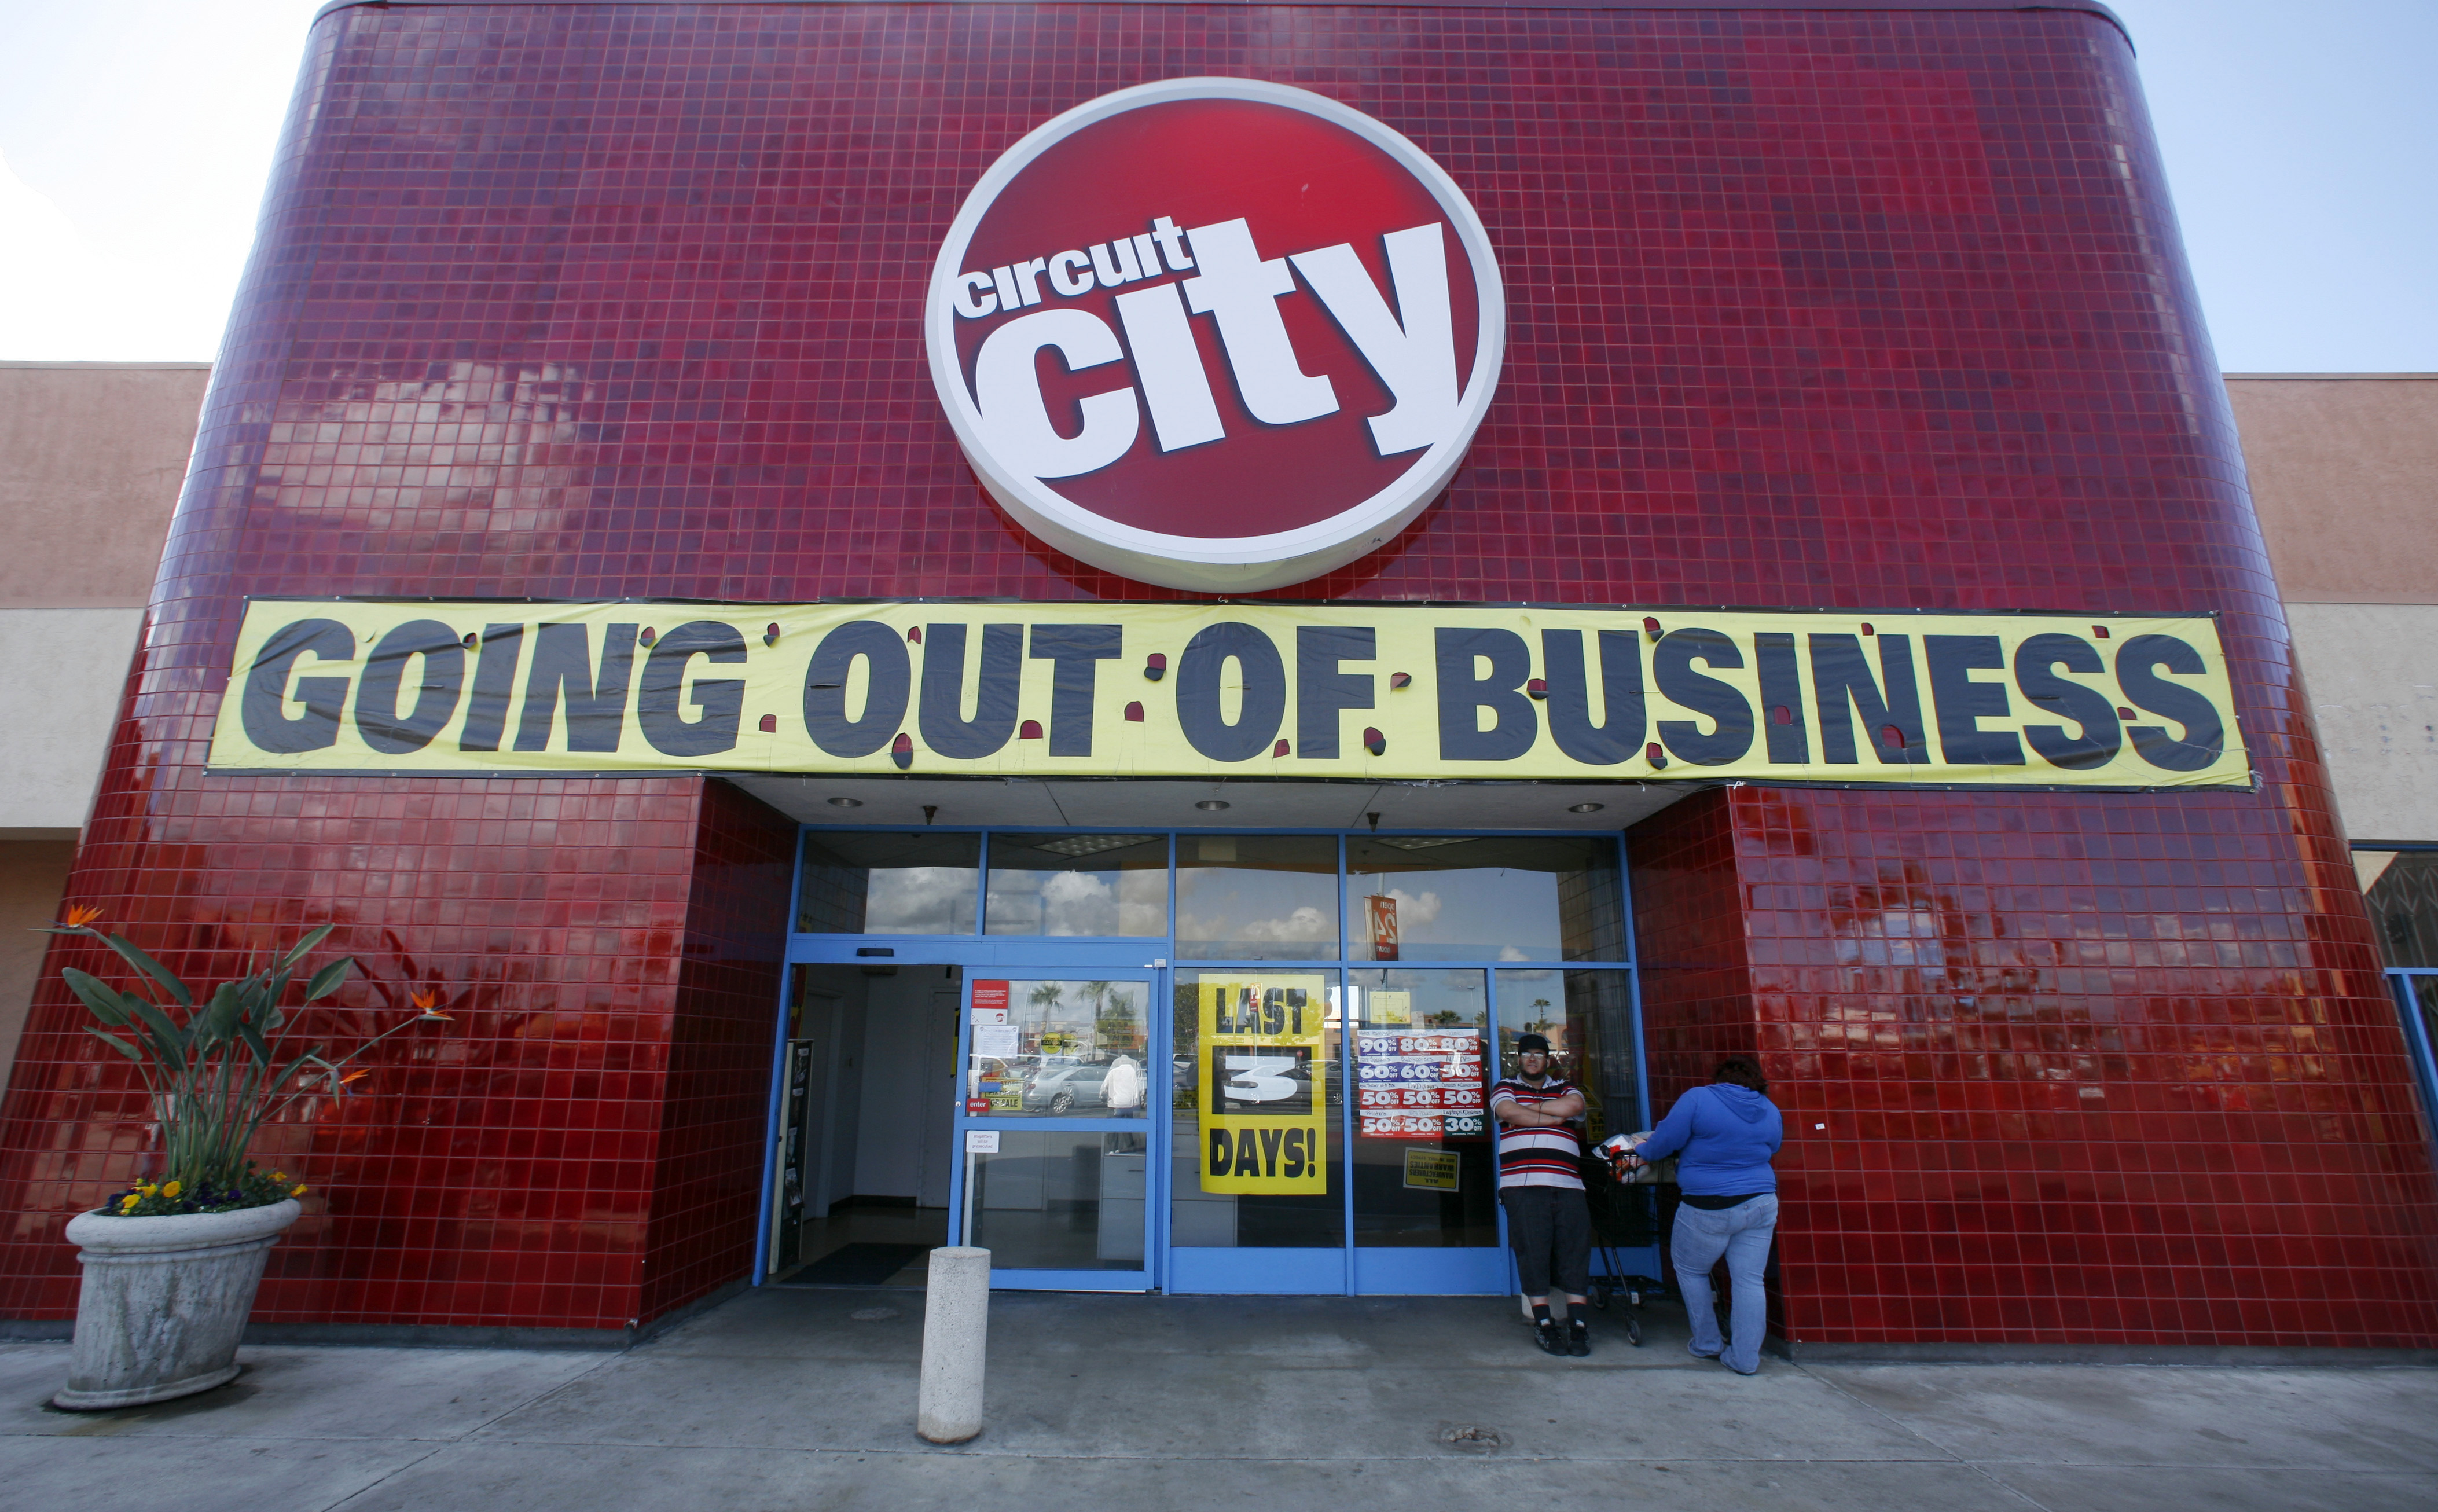 A Circuit City retail store in San Diego, California is shown here March 6, 2009 with three days left before the electronics retailer closes its doors for good.   REUTERS/Mike Blake